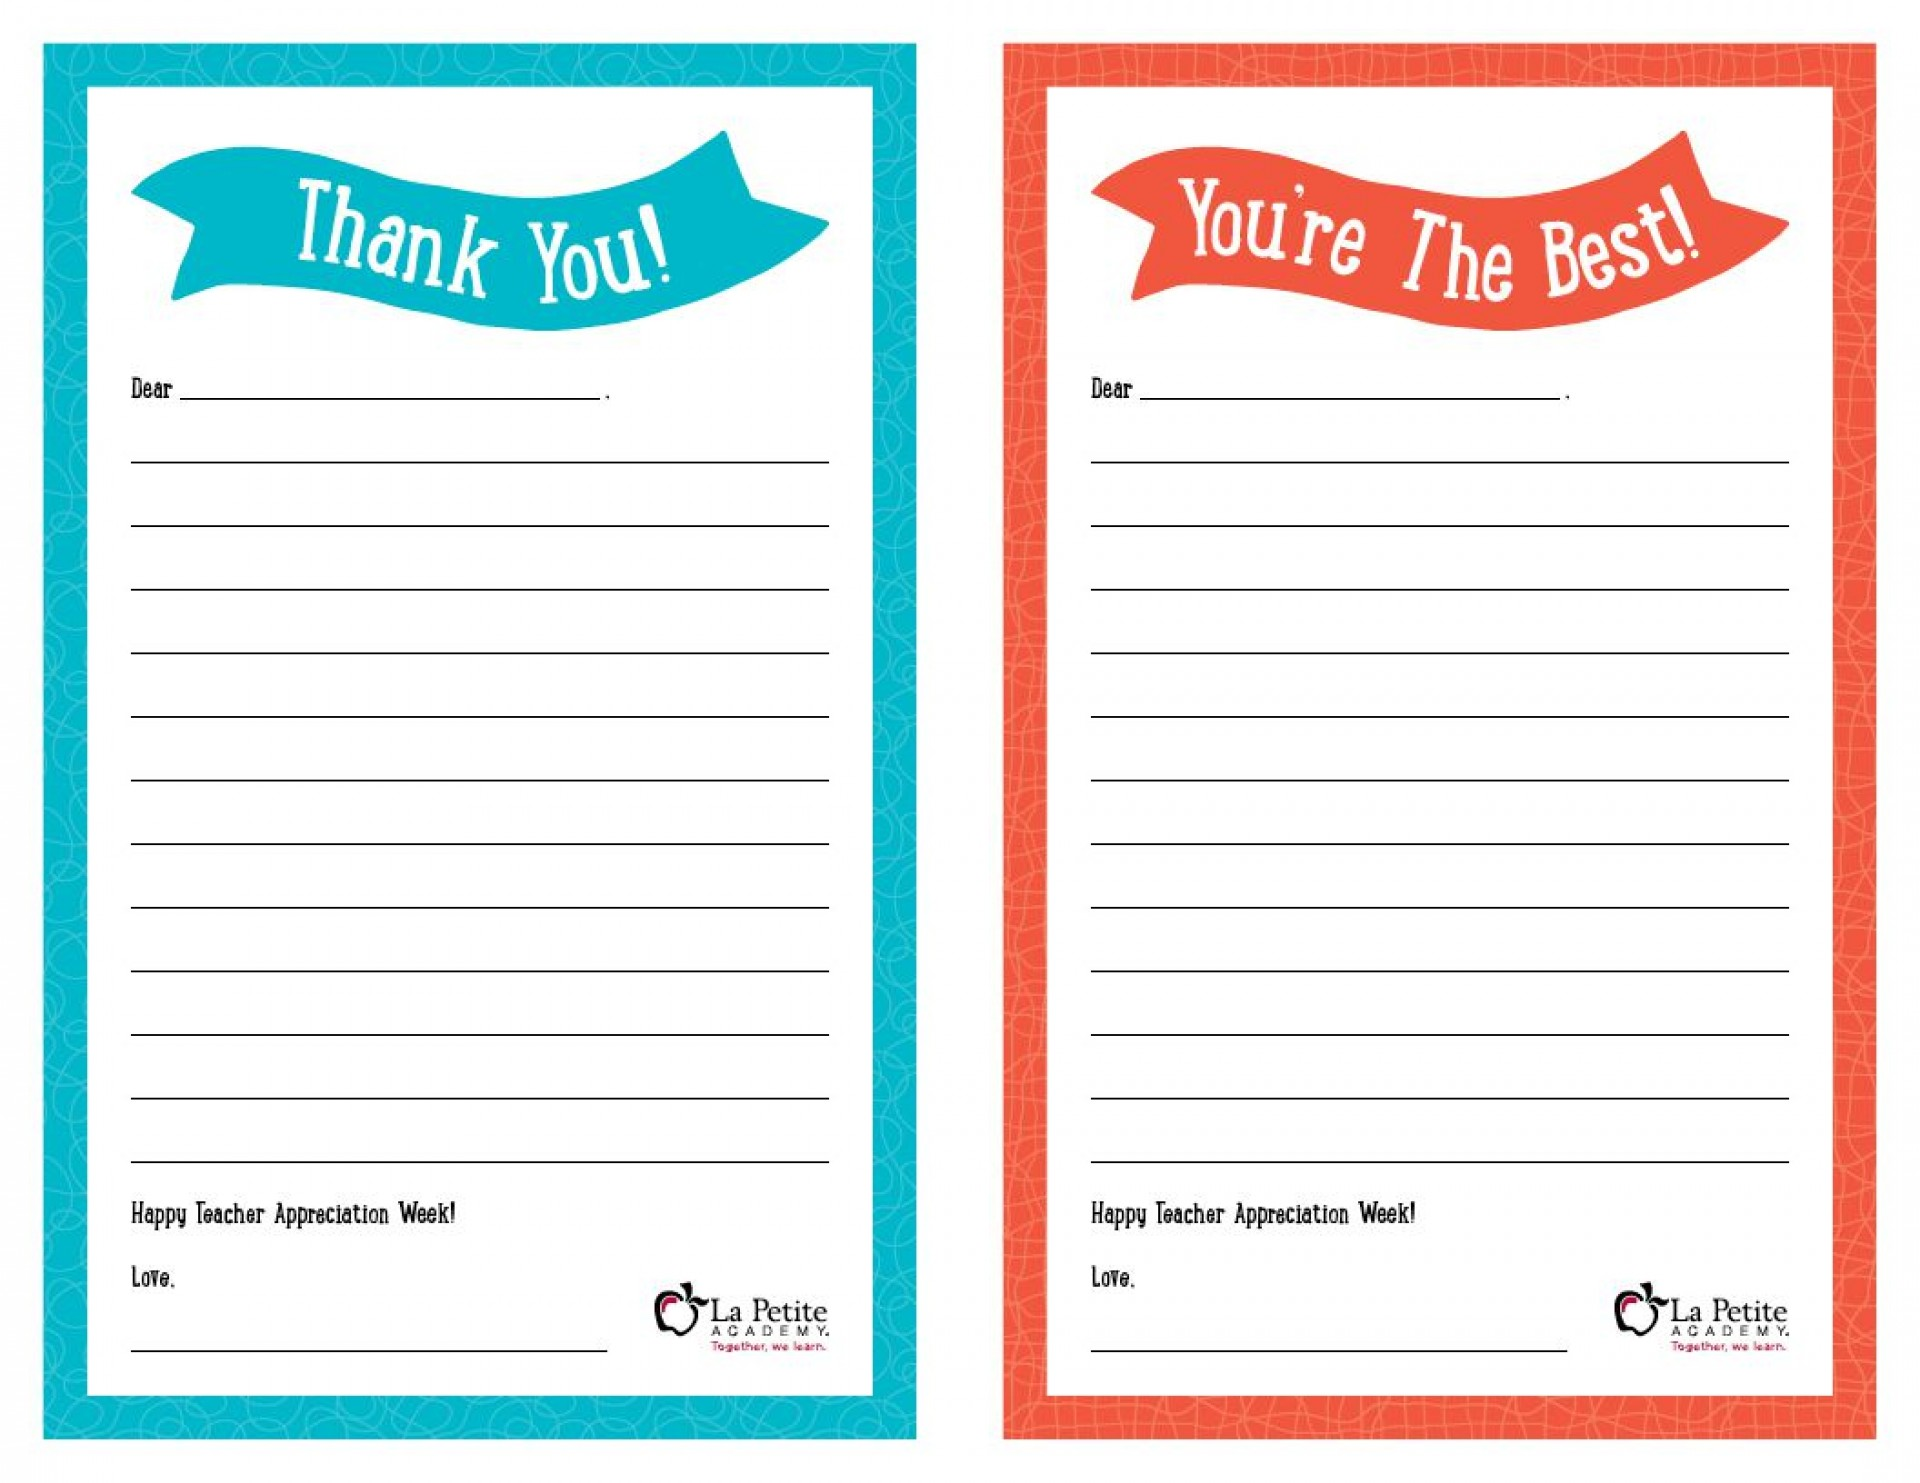 008 Remarkable Thank You Note Template Free Printable Idea 1920